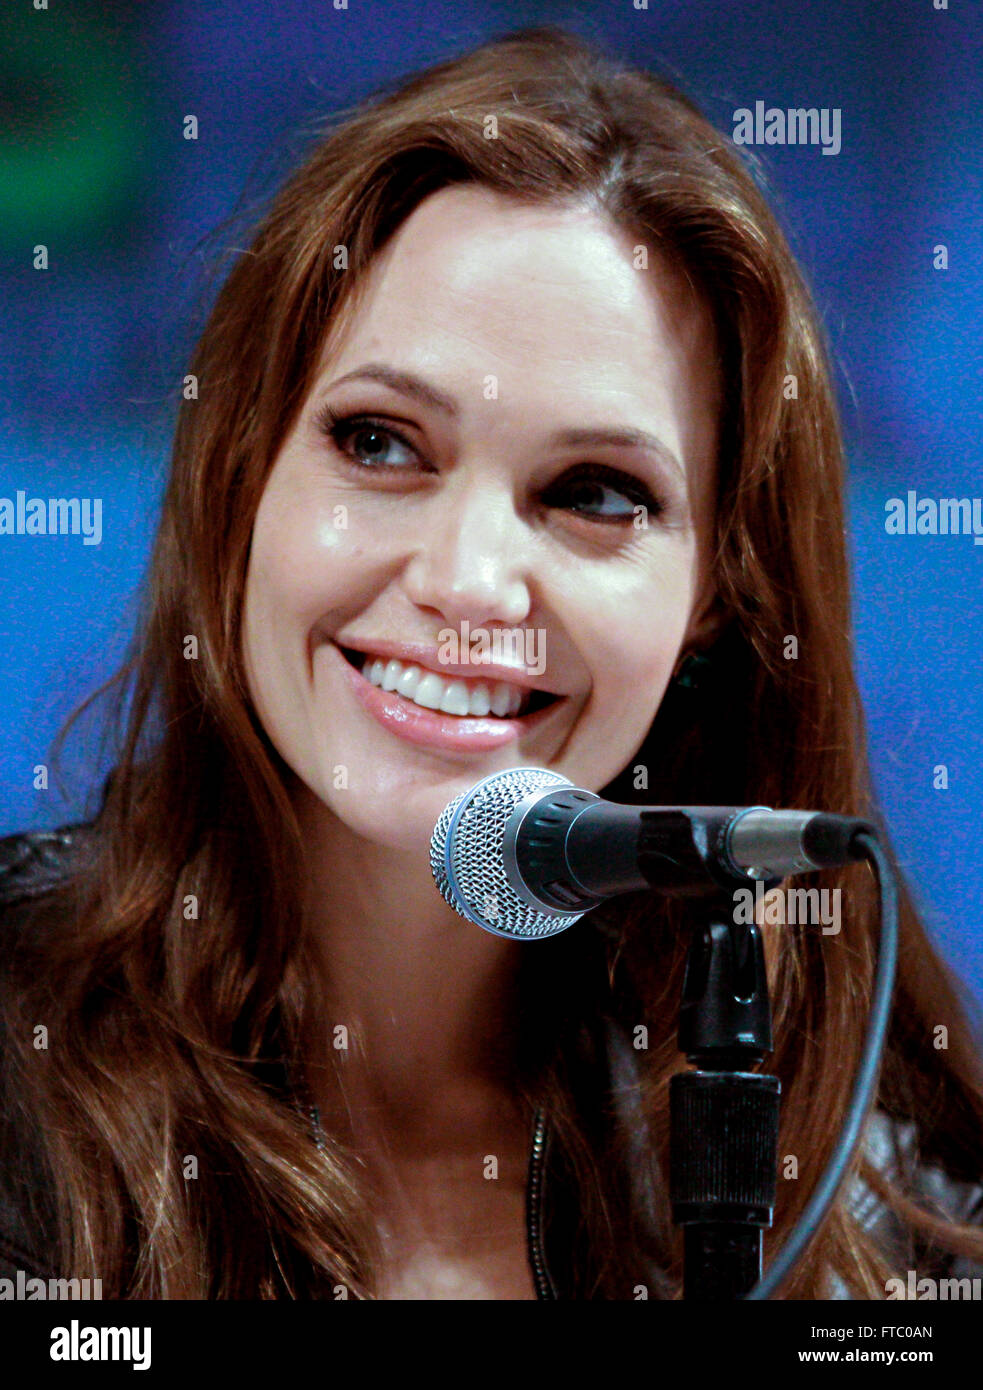 Actress Angelina Jolie Pitt discusses her movie Salt during the 2010 San Diego Comic Con July 22, 2010 in San Diego, - Stock Image